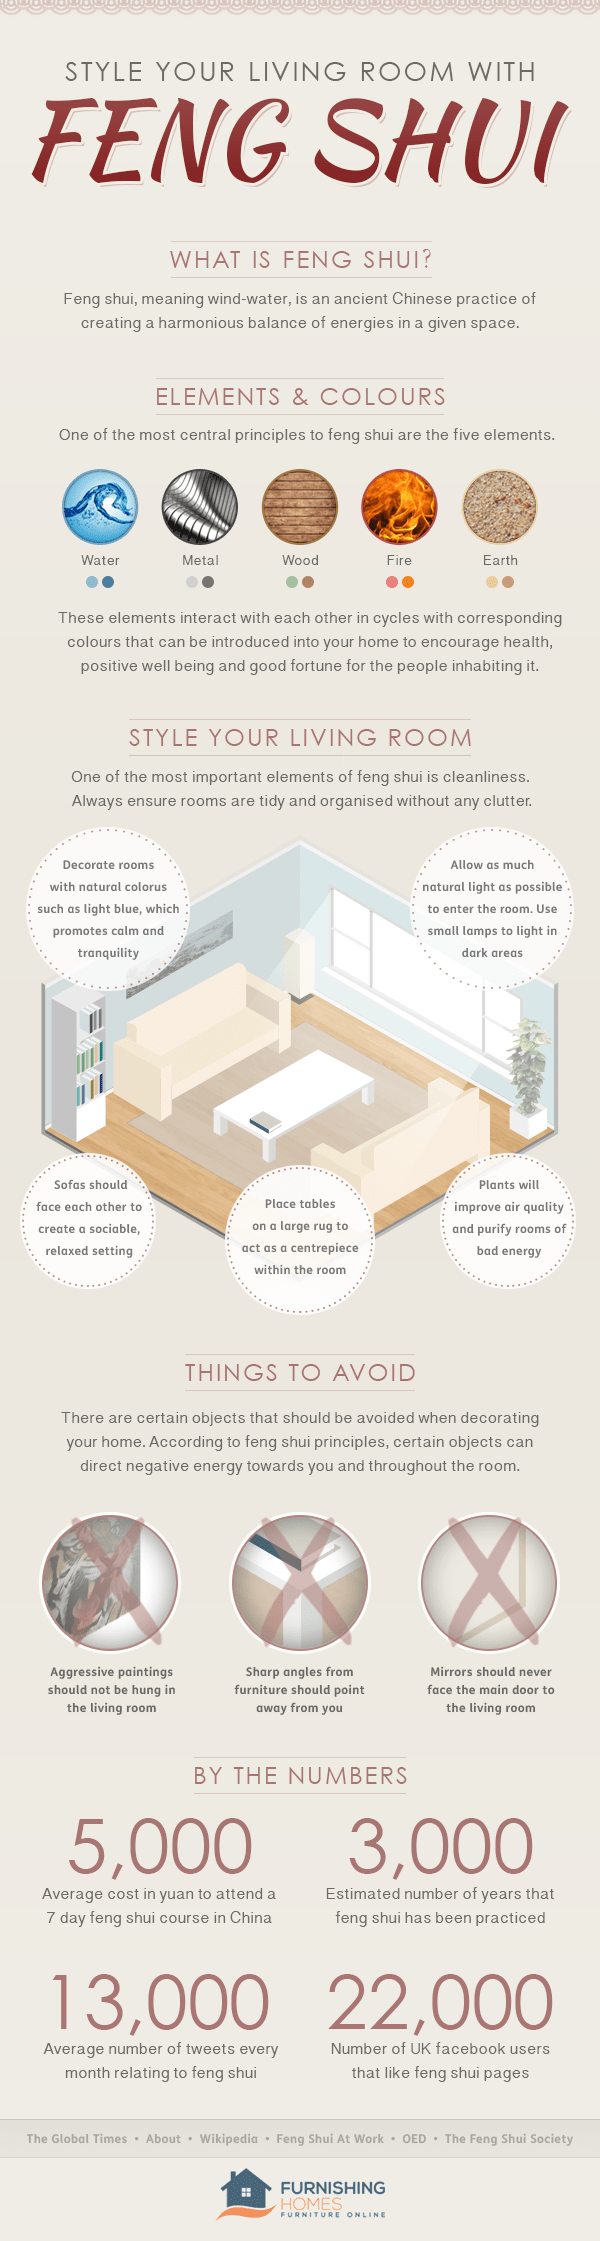 How to do feng shui infographic - for the living room